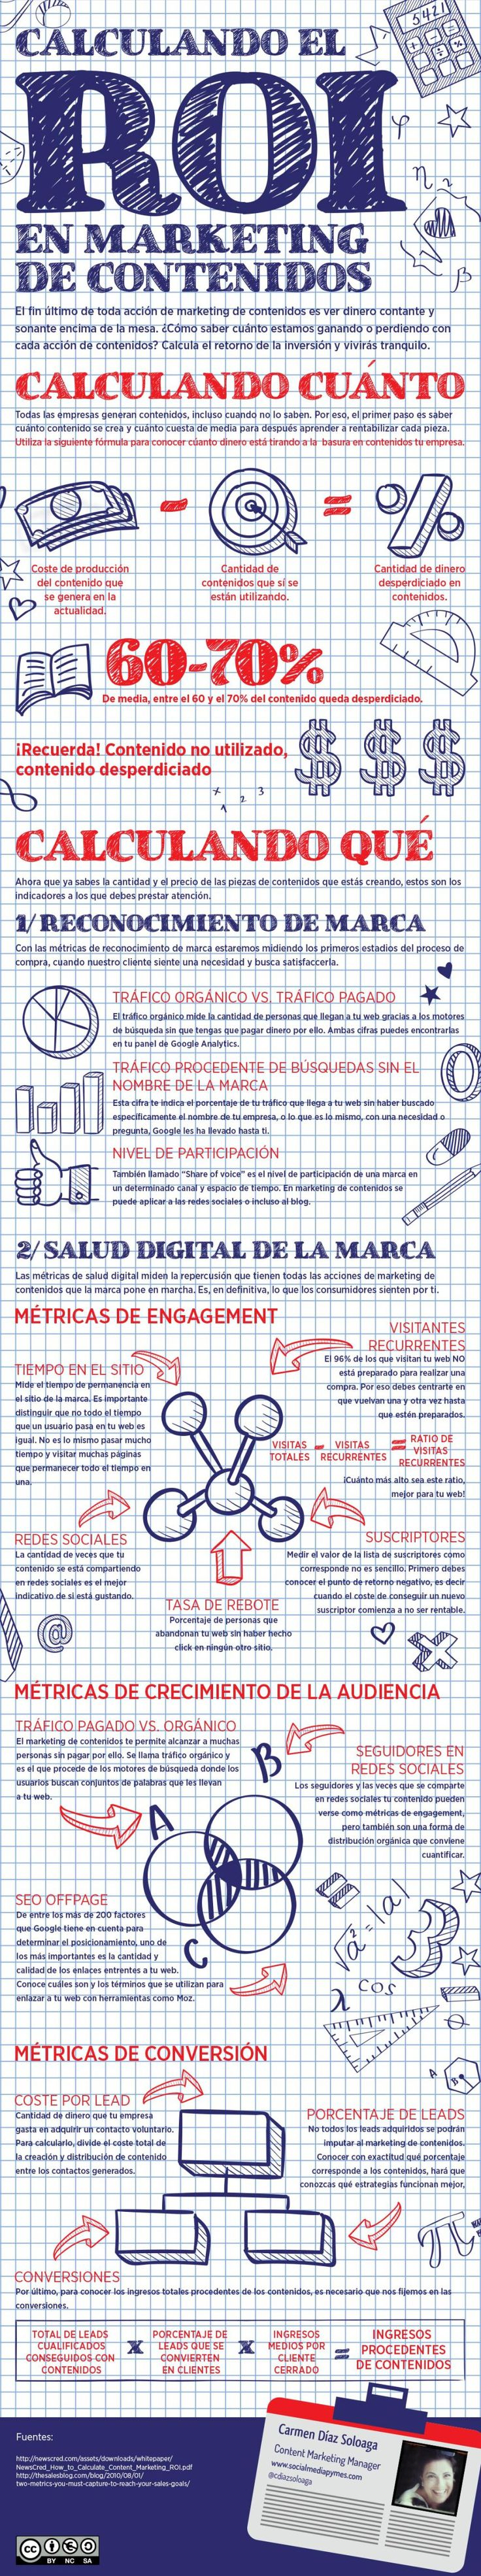 ROI en Marketing de Contenidos #marketing #content #ROI cc @anlsm30